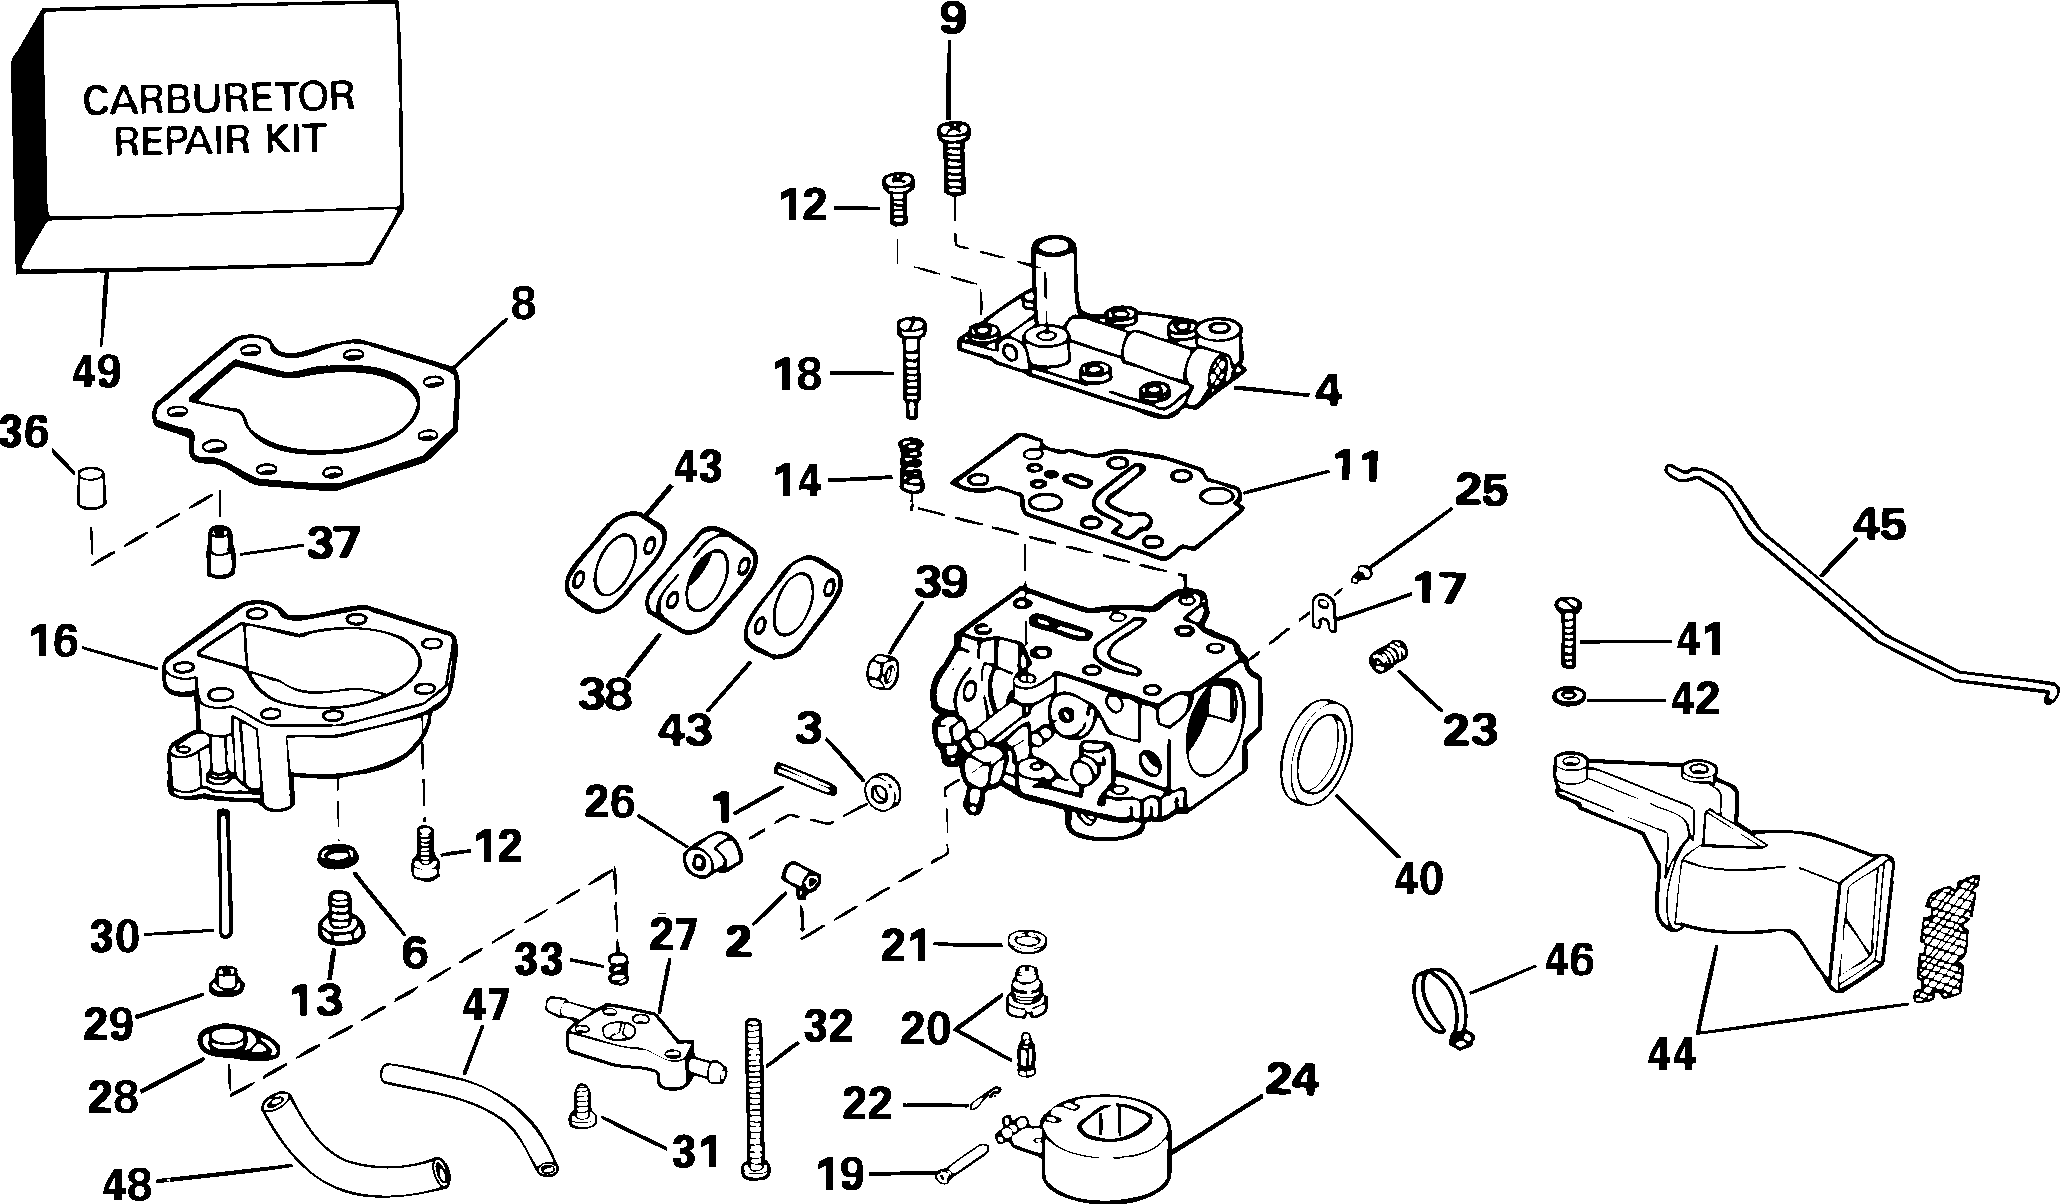 Nissan Altima 2 5l Engine Diagram also Suzuki Aerio 2 0 Engine Diagram moreover Cherokee Sport Engine Diagram additionally 02 Suzuki Aerio Parts Diagram in addition Hall Effect Sensors. on p 0996b43f802d6b34